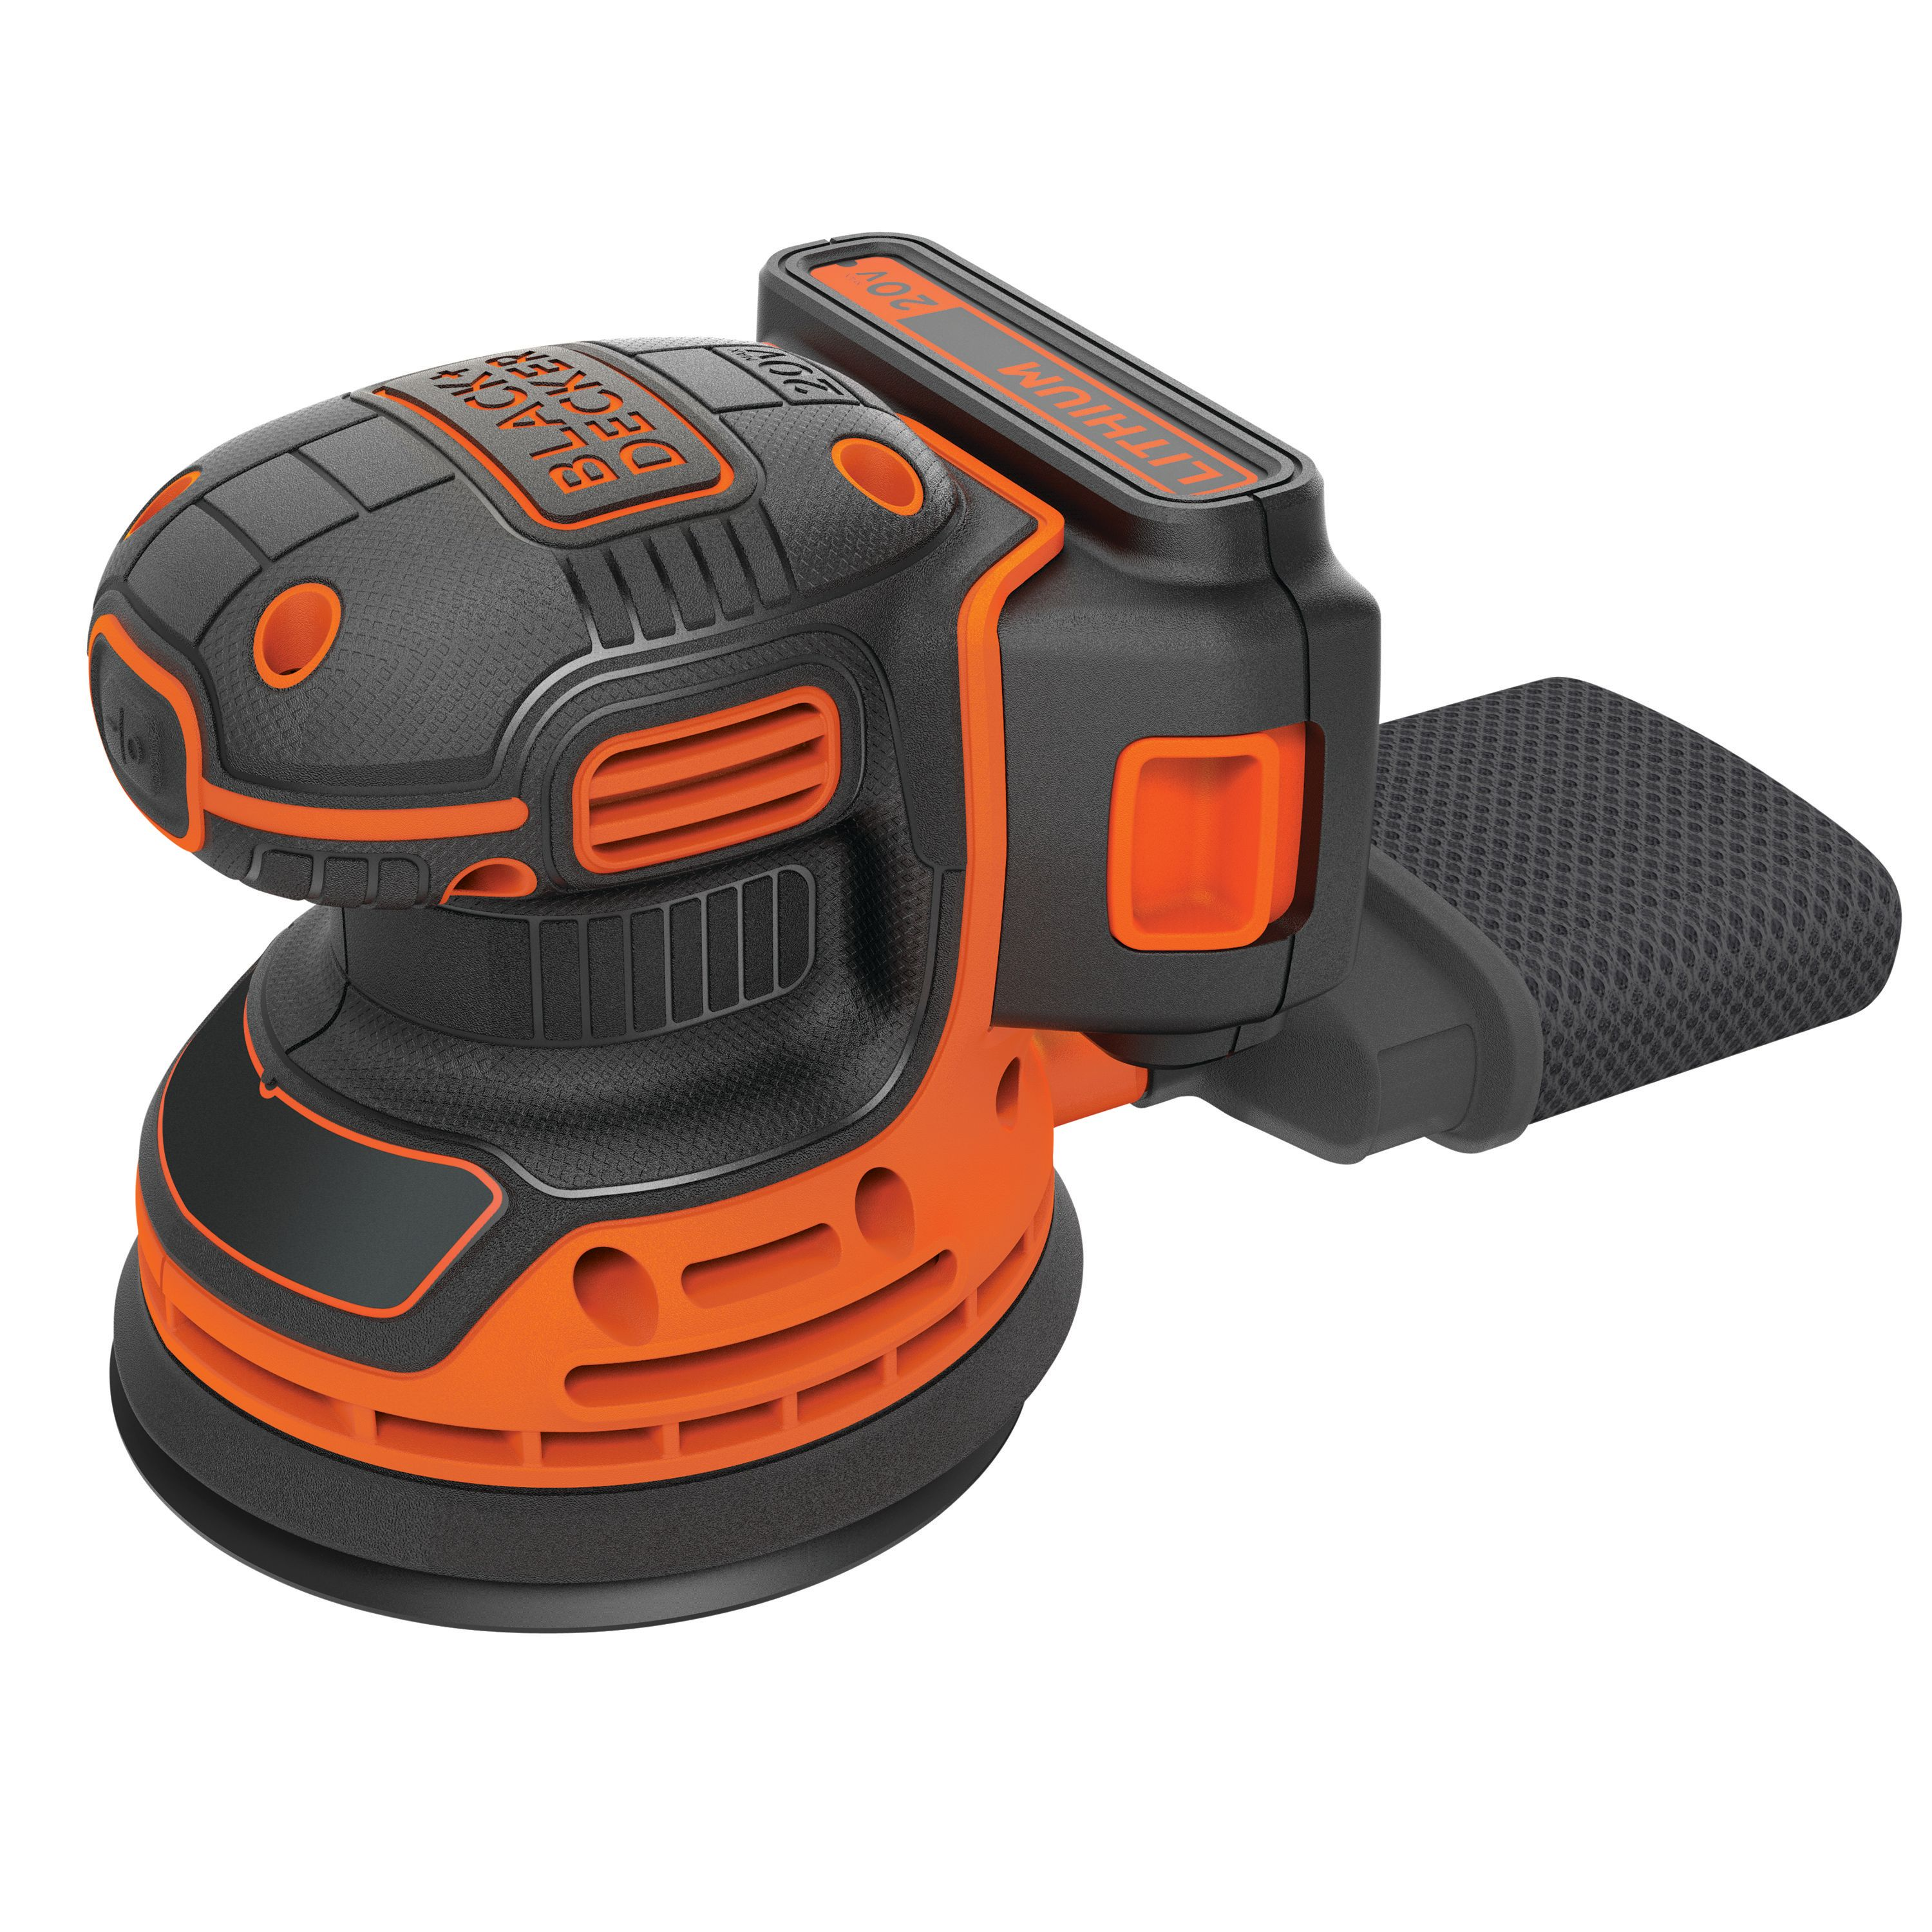 Black & Decker BDRO20C 20V MAX Cordless Random Orbit Sander by Stanley Black & Decker